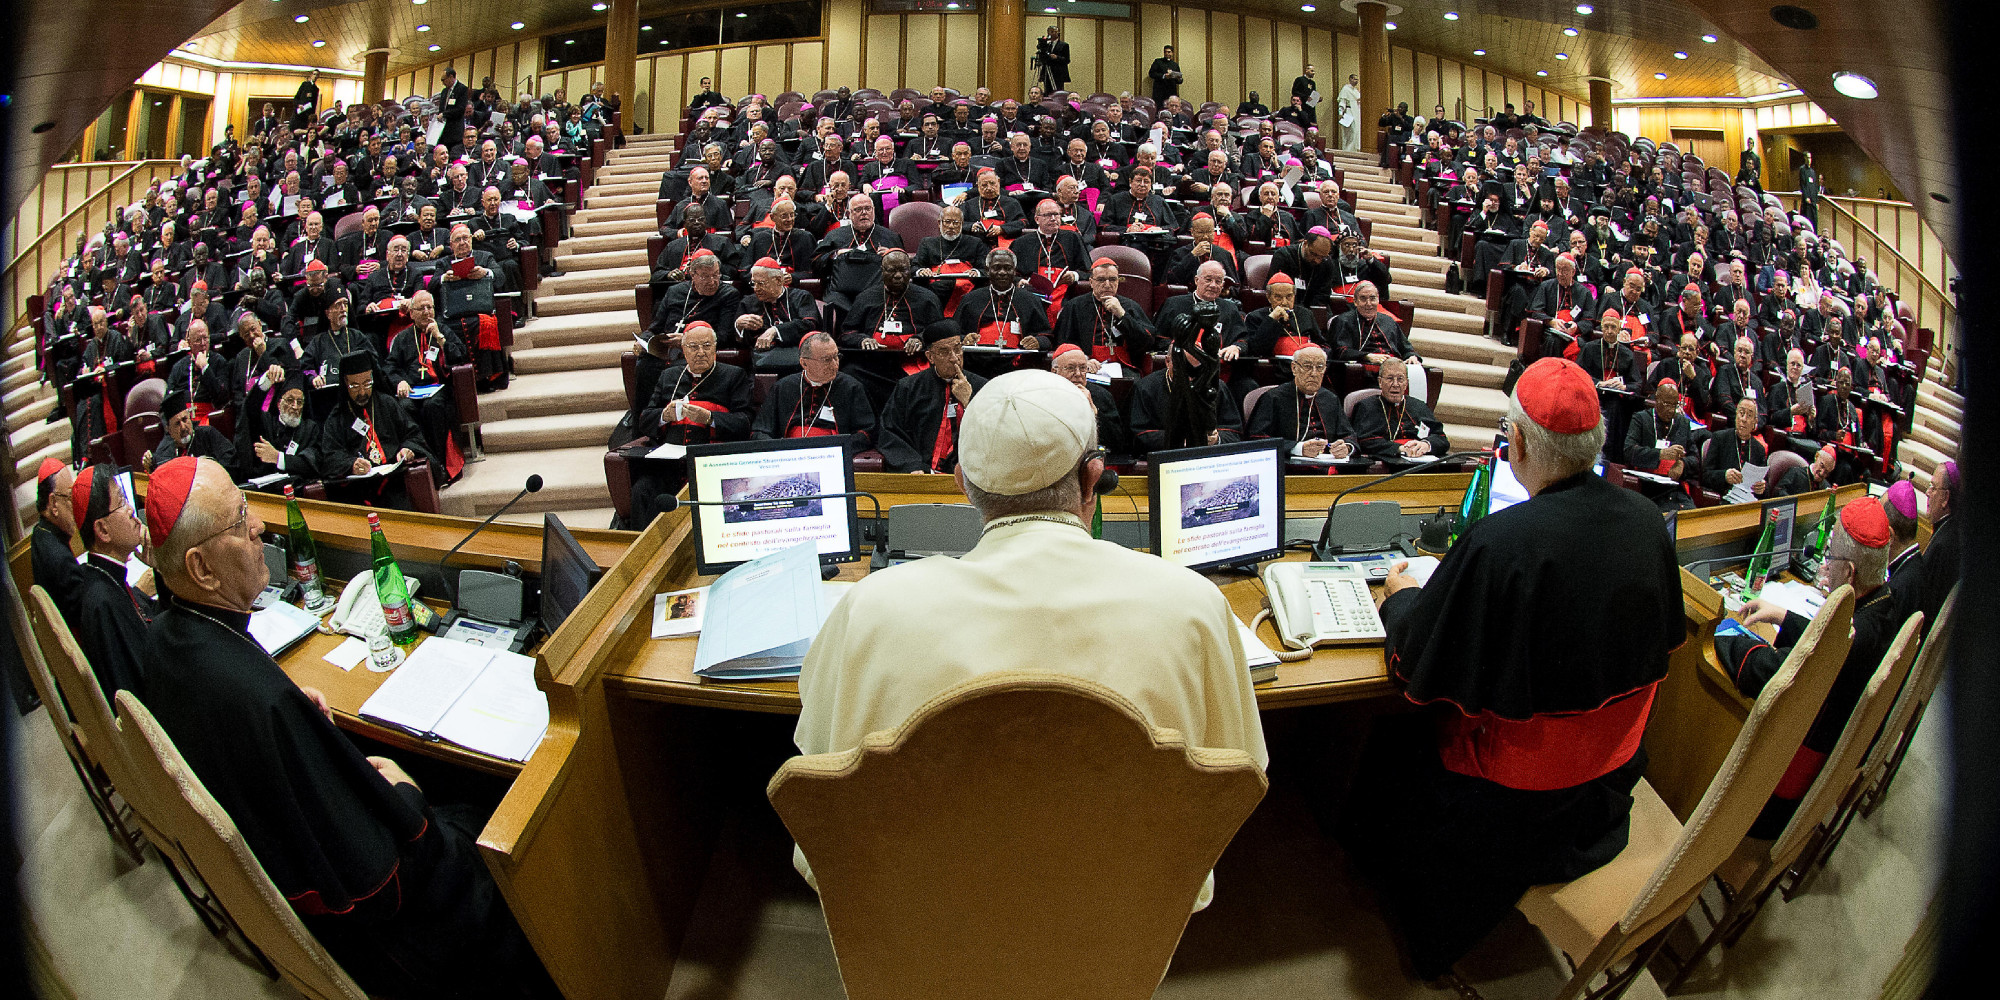 "A handout picture released by the Vatican press office show Pope Francis (C) chairing an extraordinary synod of nearly 200 senior clerics in the Synod Aula at the Vatican on October 6, 2014. Pope Francis issued a strong signal of support for reform of the Catholic Church's approach to marriage, cohabitation and divorce as bishops gathered for a landmark review of teaching on the family. Thorny theological questions such as whether divorced and remarried believers should be able to receive communion will dominate two weeks of closed-door discussions set to pit conservative clerics against reformists. AFP PHOTO / OSSERVATORE ROMANO == RESTRICTED TO EDITORIAL USE - MANDATORY CREDIT ""AFP PHOTO / OSSERVATORE ROMANO"" - NO MARKETING NO ADVERTISING CAMPAIGNS - DISTRIBUTED AS A SERVICE TO CLIENTS =="